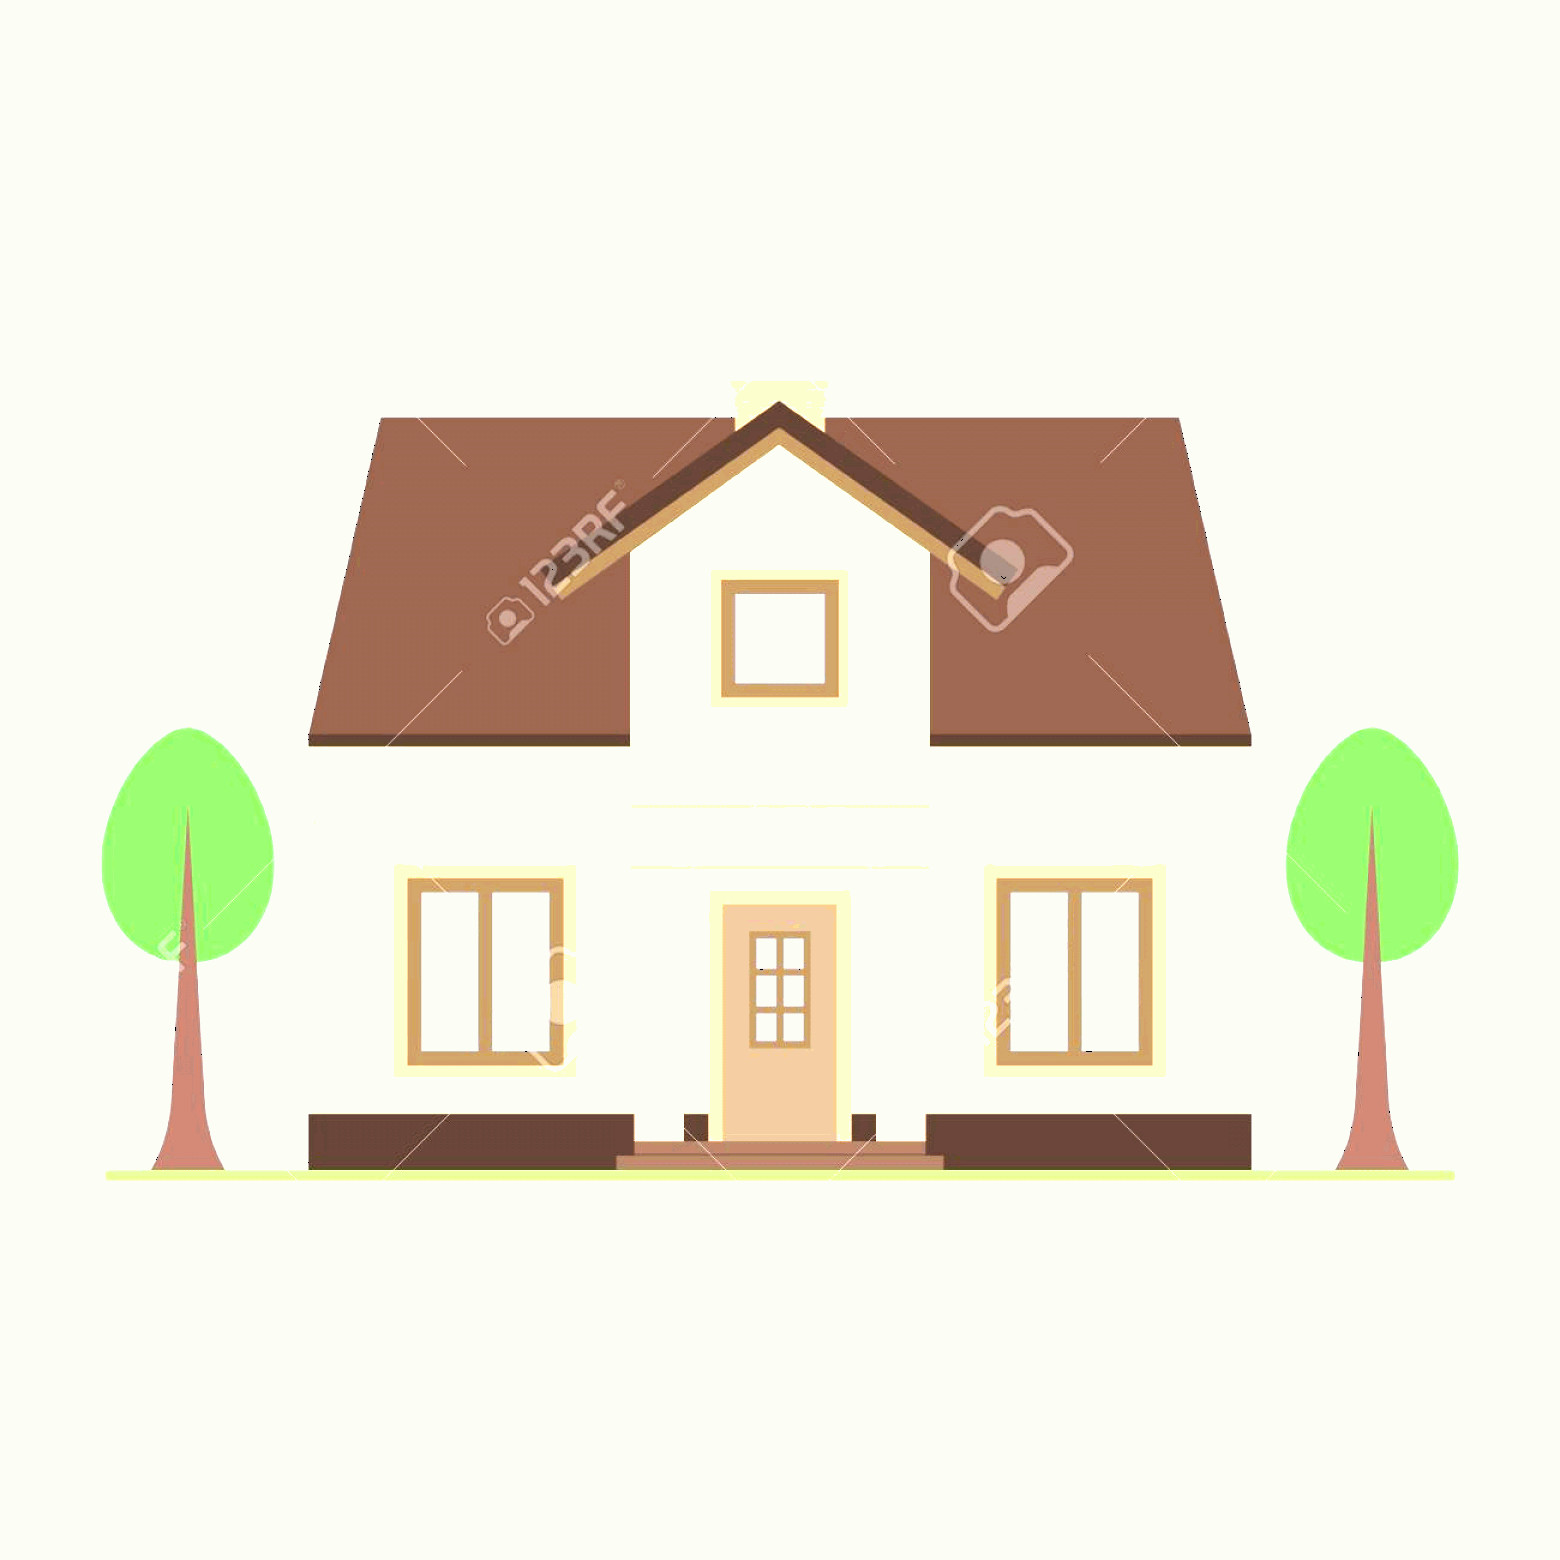 Flat Vector House: Photostock Vector House Vector Illustration Flat Style Modern Buildings Vector Illustration